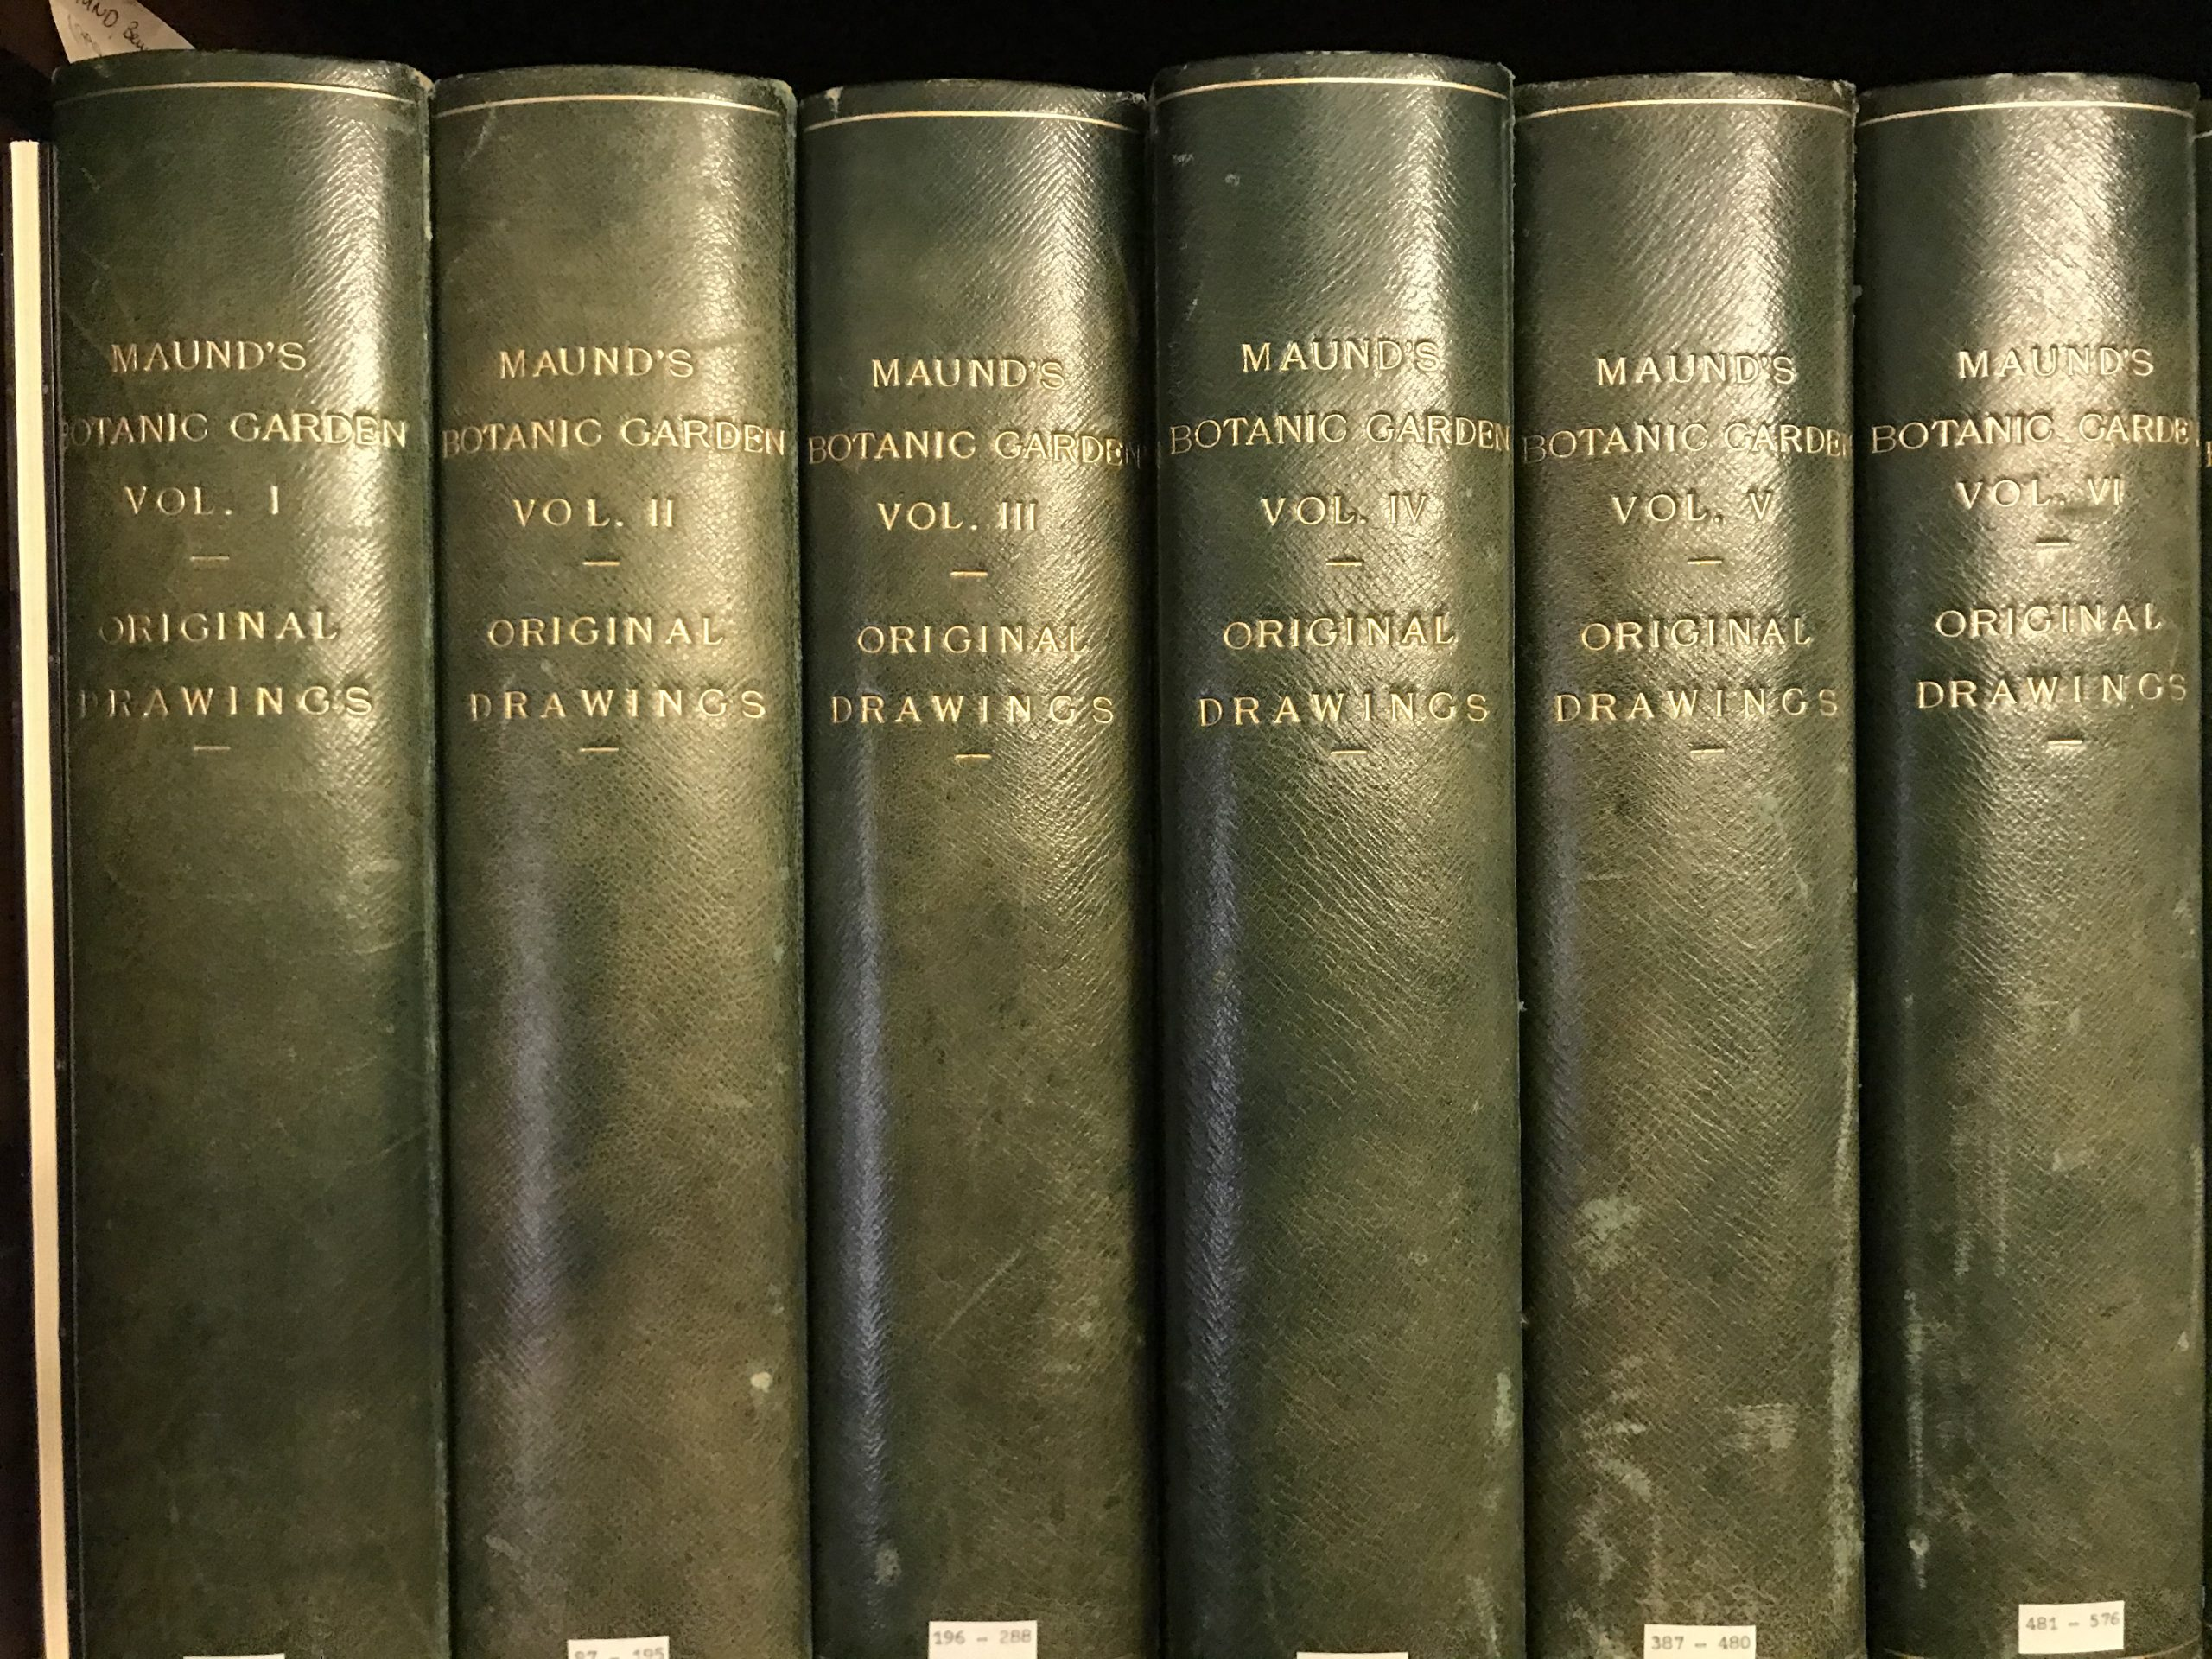 13 Volumes of Original watercolours from Maund's The Botanic Garden at NHM Library Special Collections Botany Drawings CUPD 12